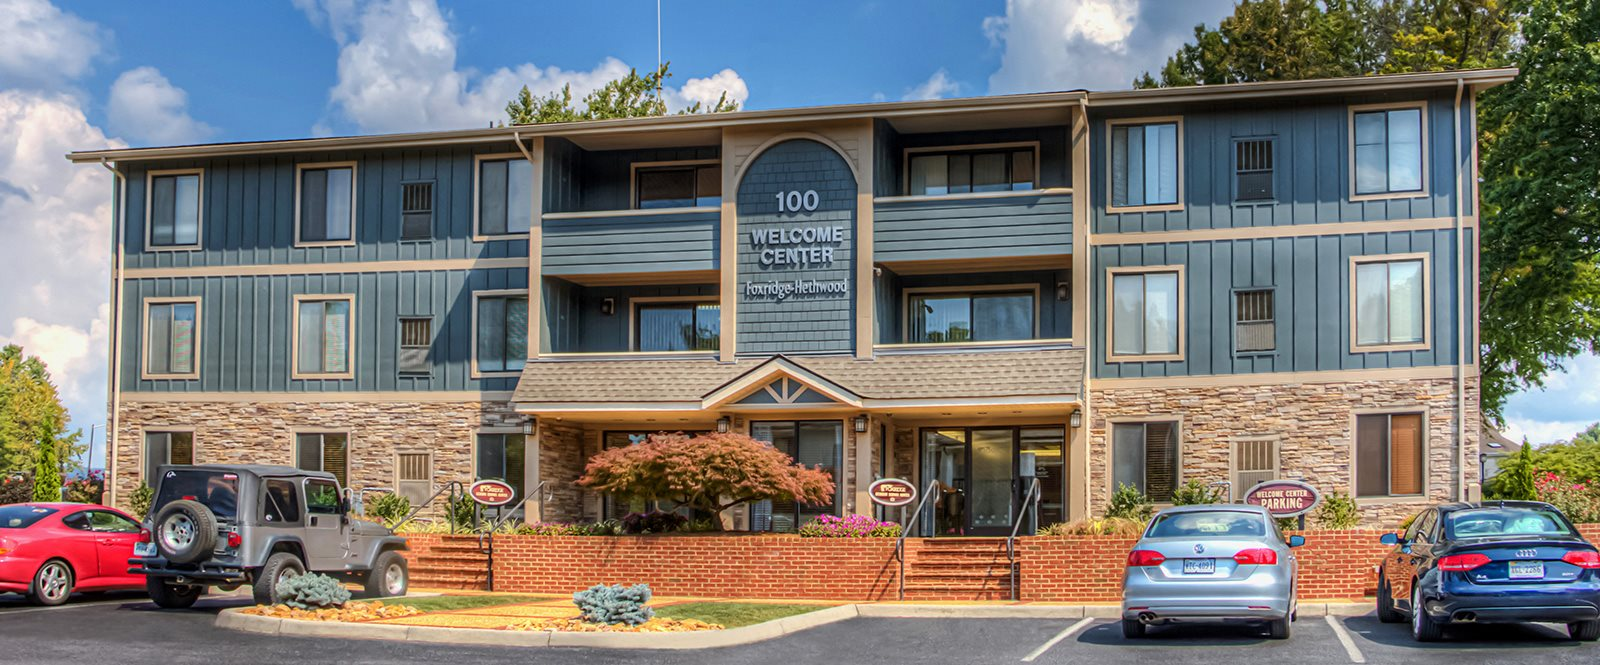 Front View Of Property at Foxridge Apartment Homes by HHHunt, Blacksburg, 24060